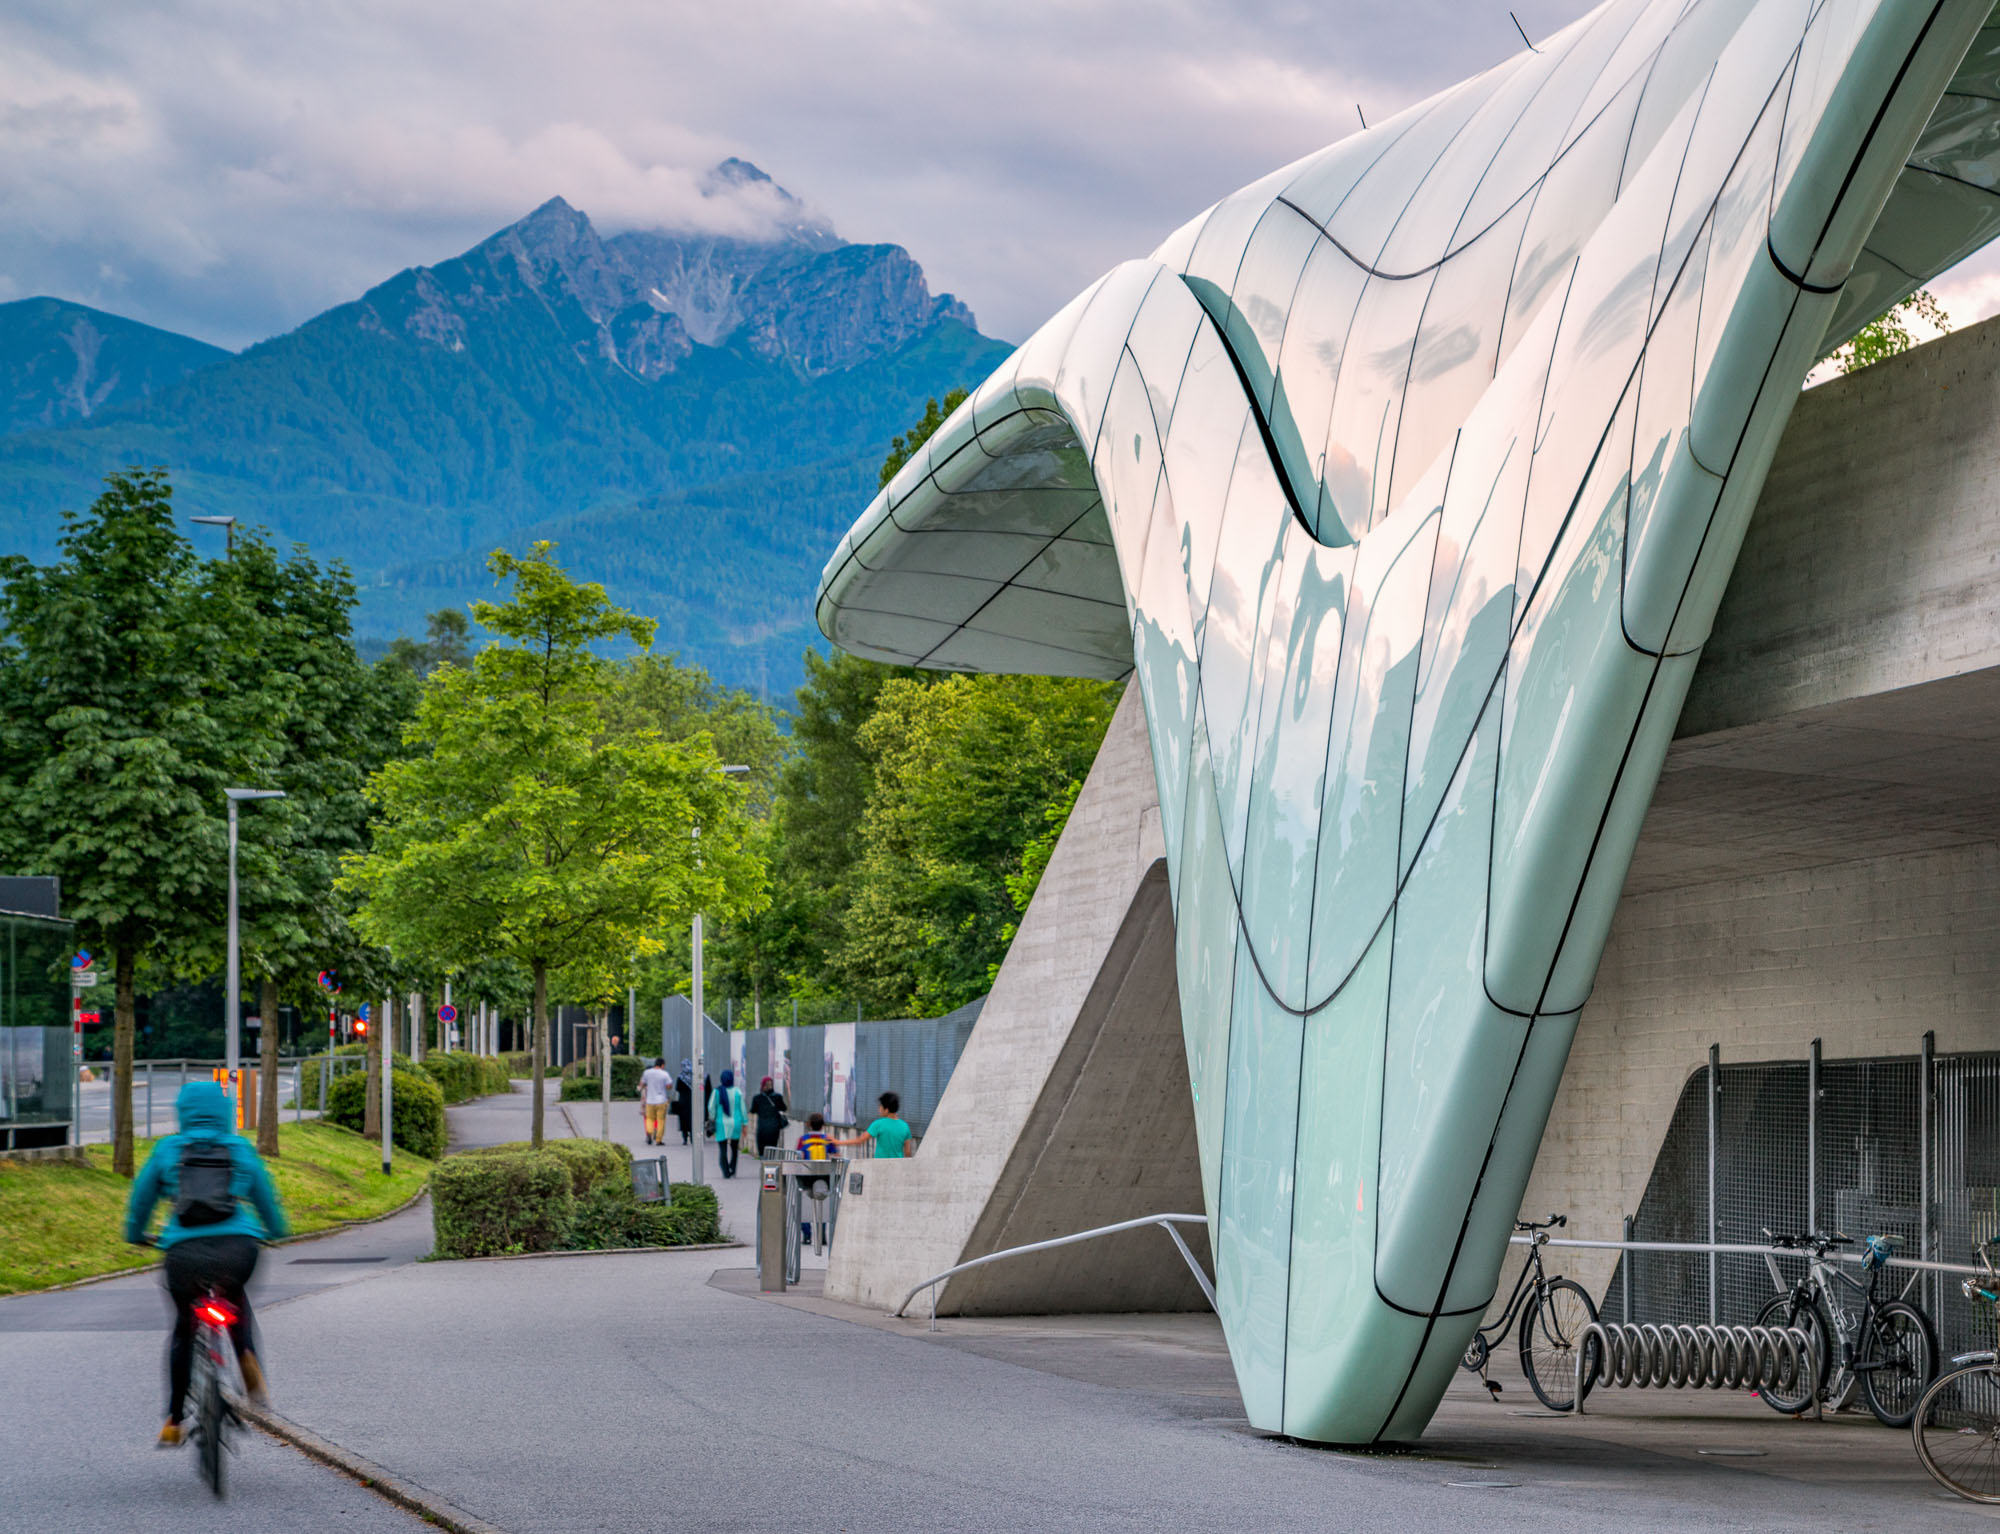 The architecture of Nordpark Railway Station in Austria